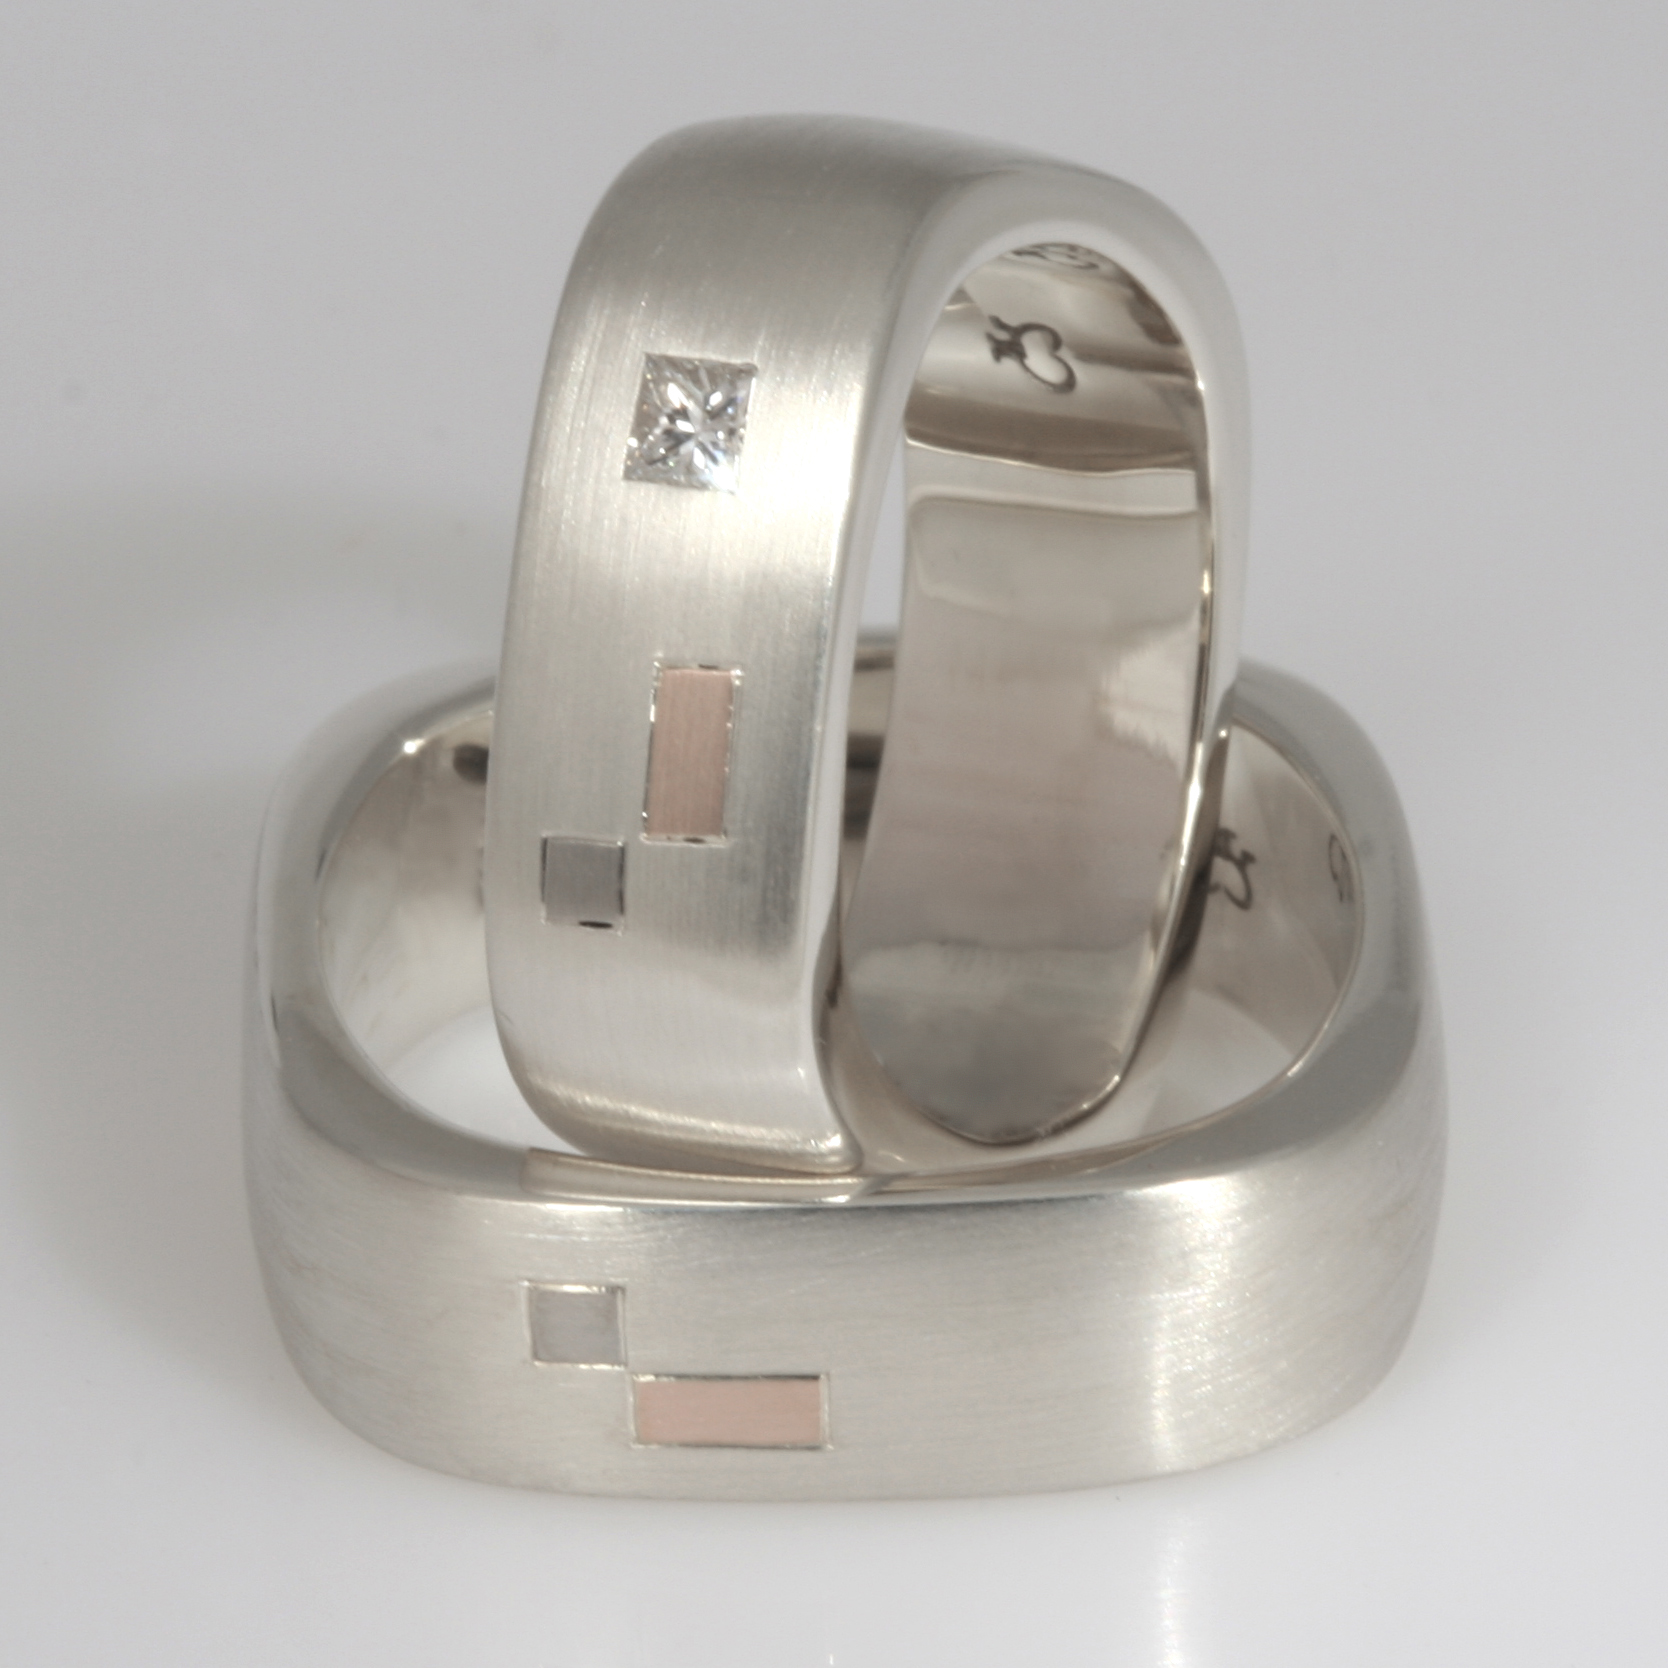 Handmade 9ct white gold ladies and gents square wedding rings featuring 18ct rose gold and 18ct white gold inlays